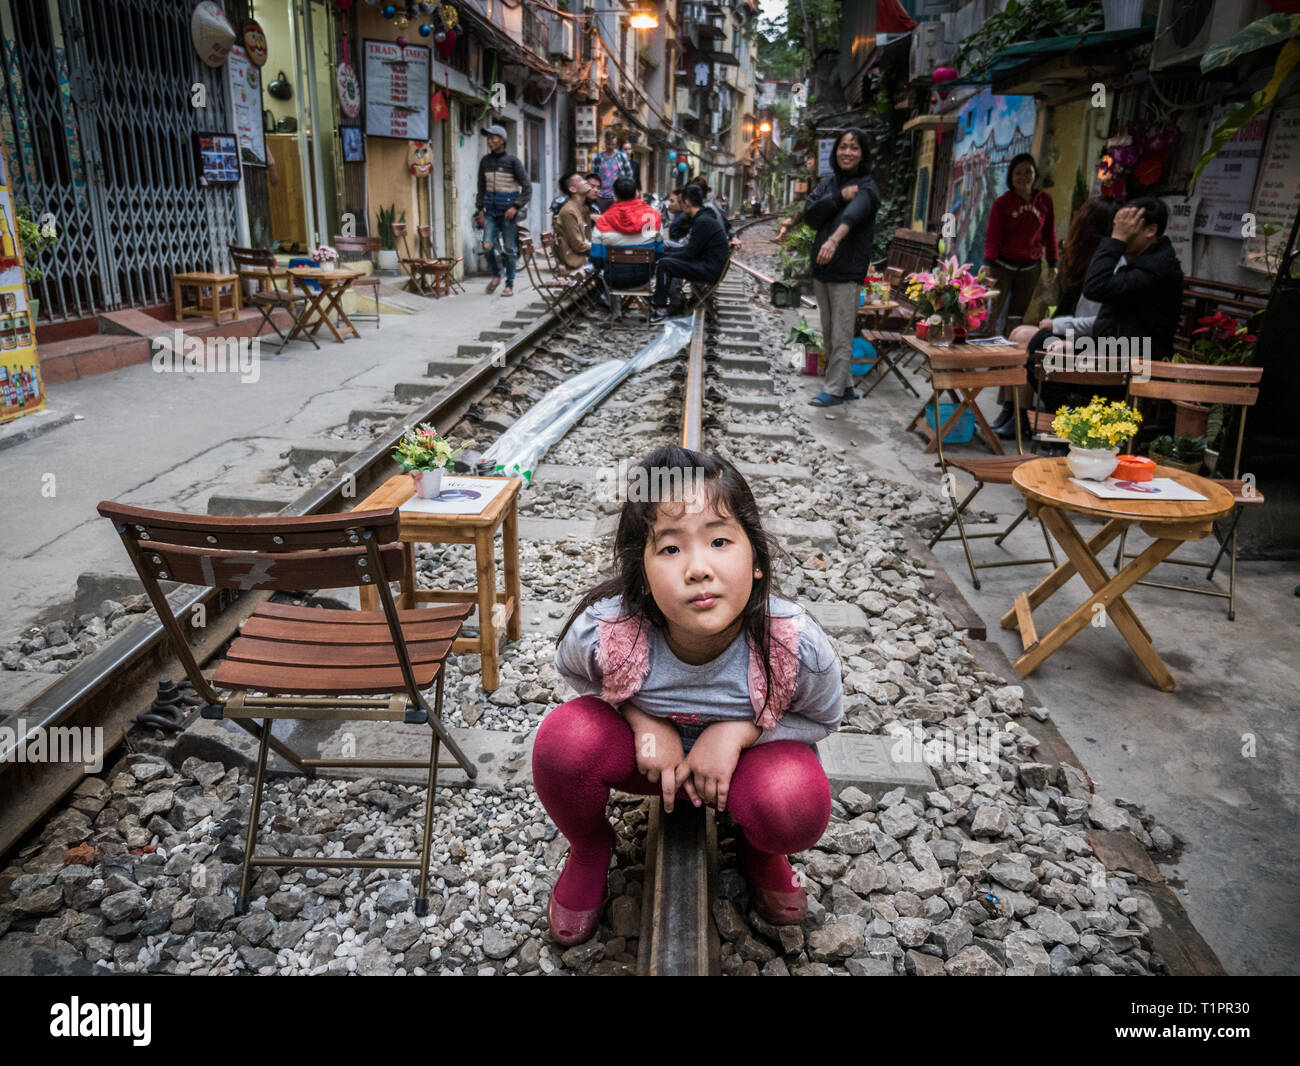 Curious Vietnamese girl squatting on rails and looks into camera in train street of Hanoi City, Vietnam - Stock Image